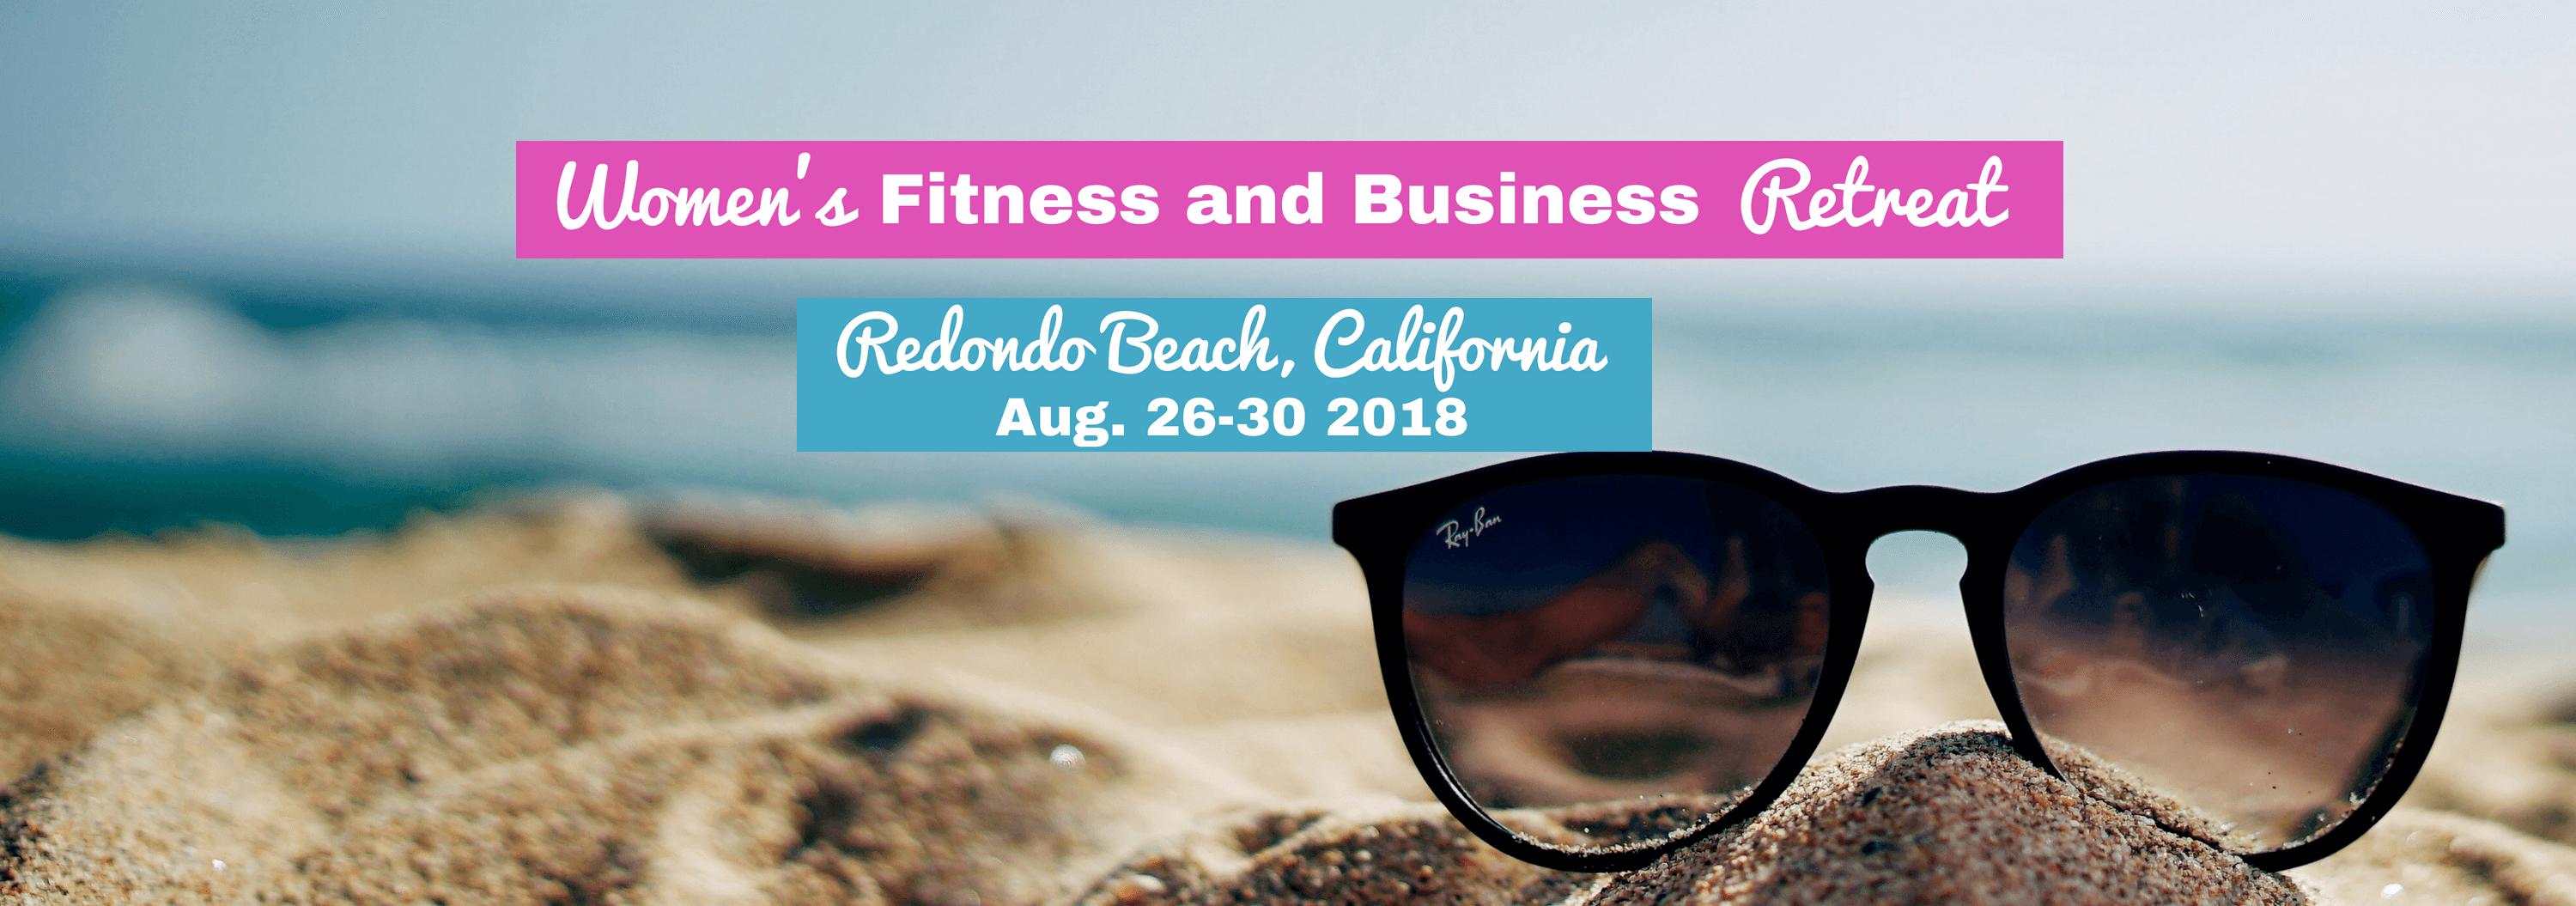 women's fitness retreat california